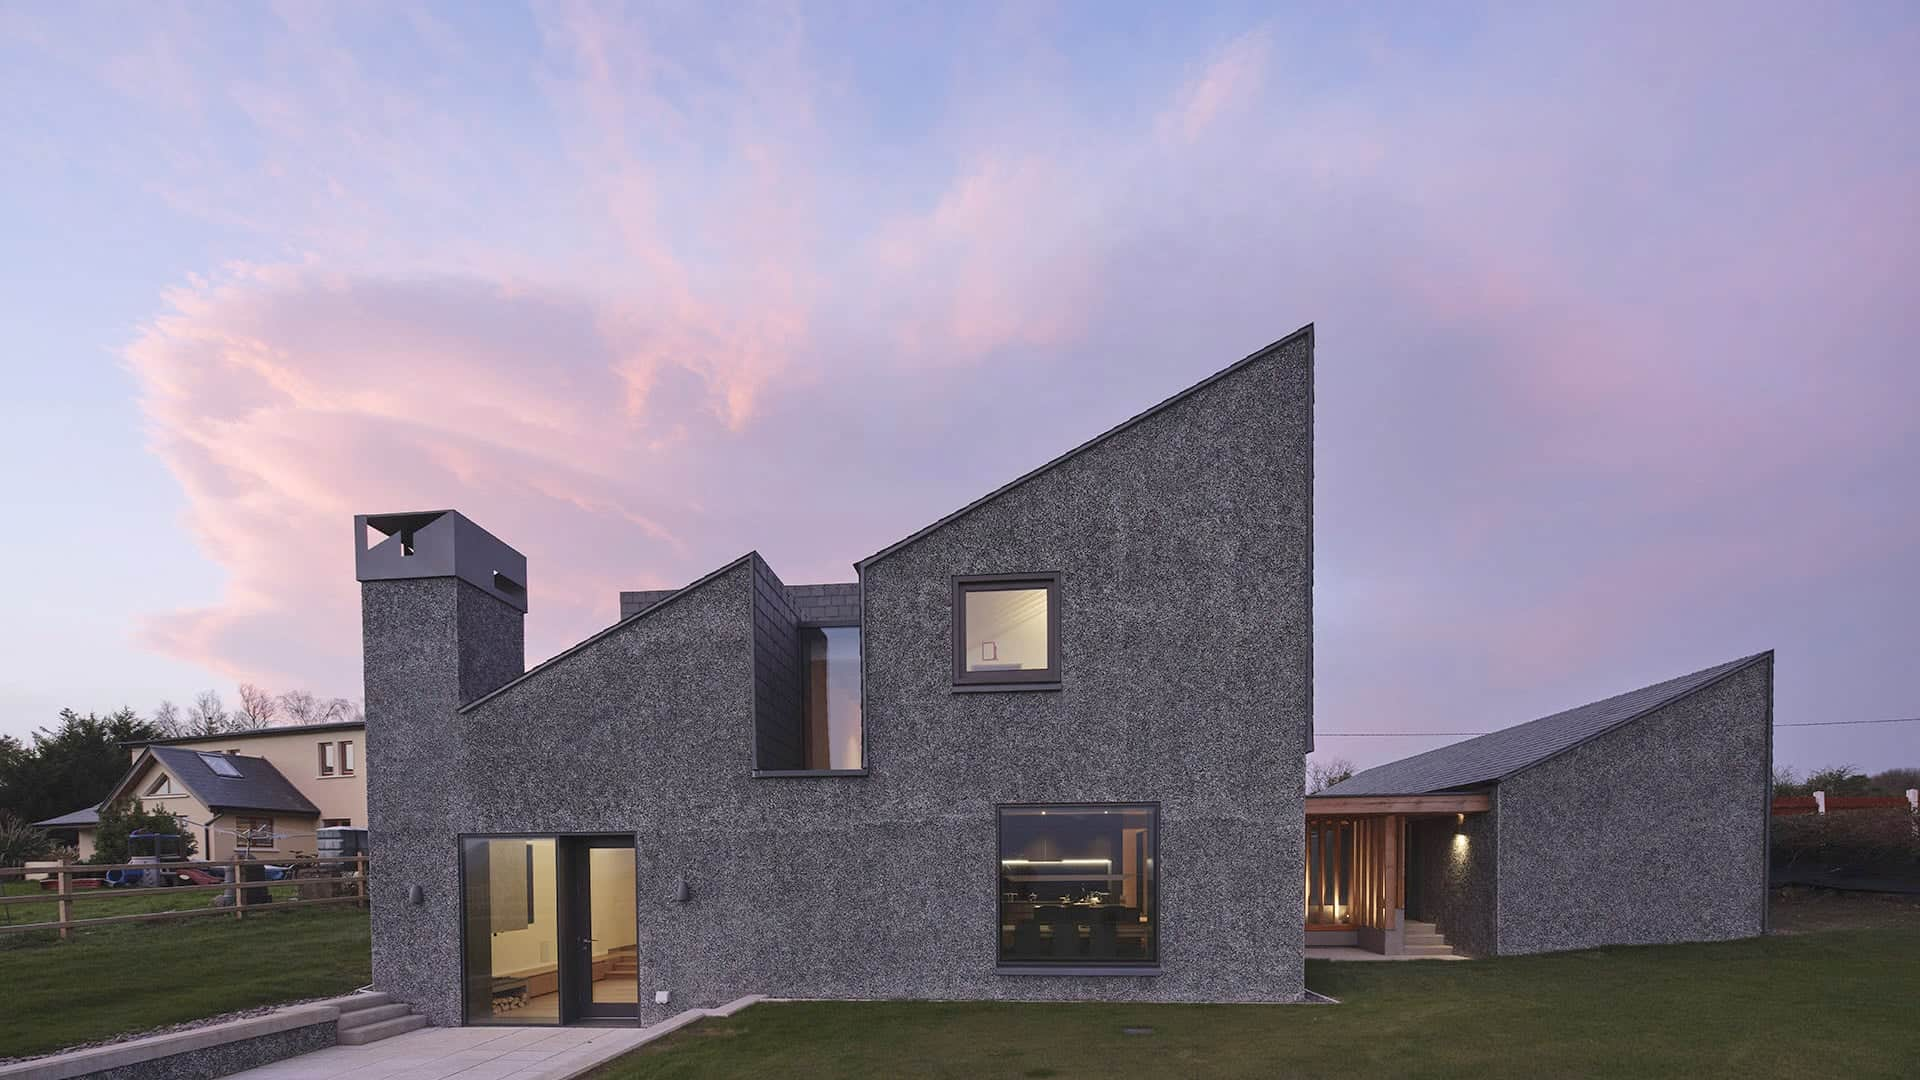 A new Irish house with a modern hardy pebbledash/crushed-slate-dash finish, and a stupendous view